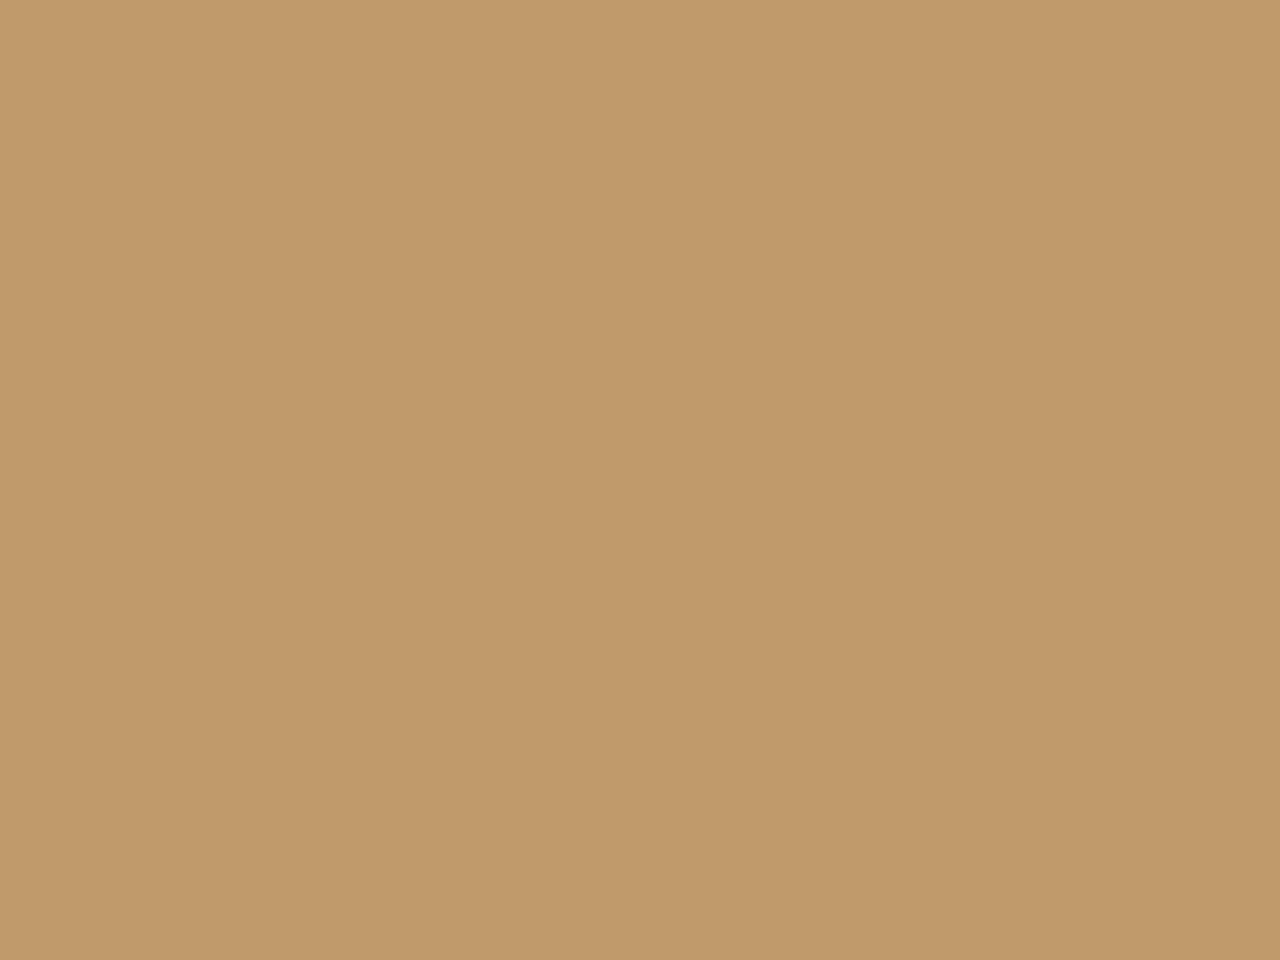 1280x960 Wood Brown Solid Color Background